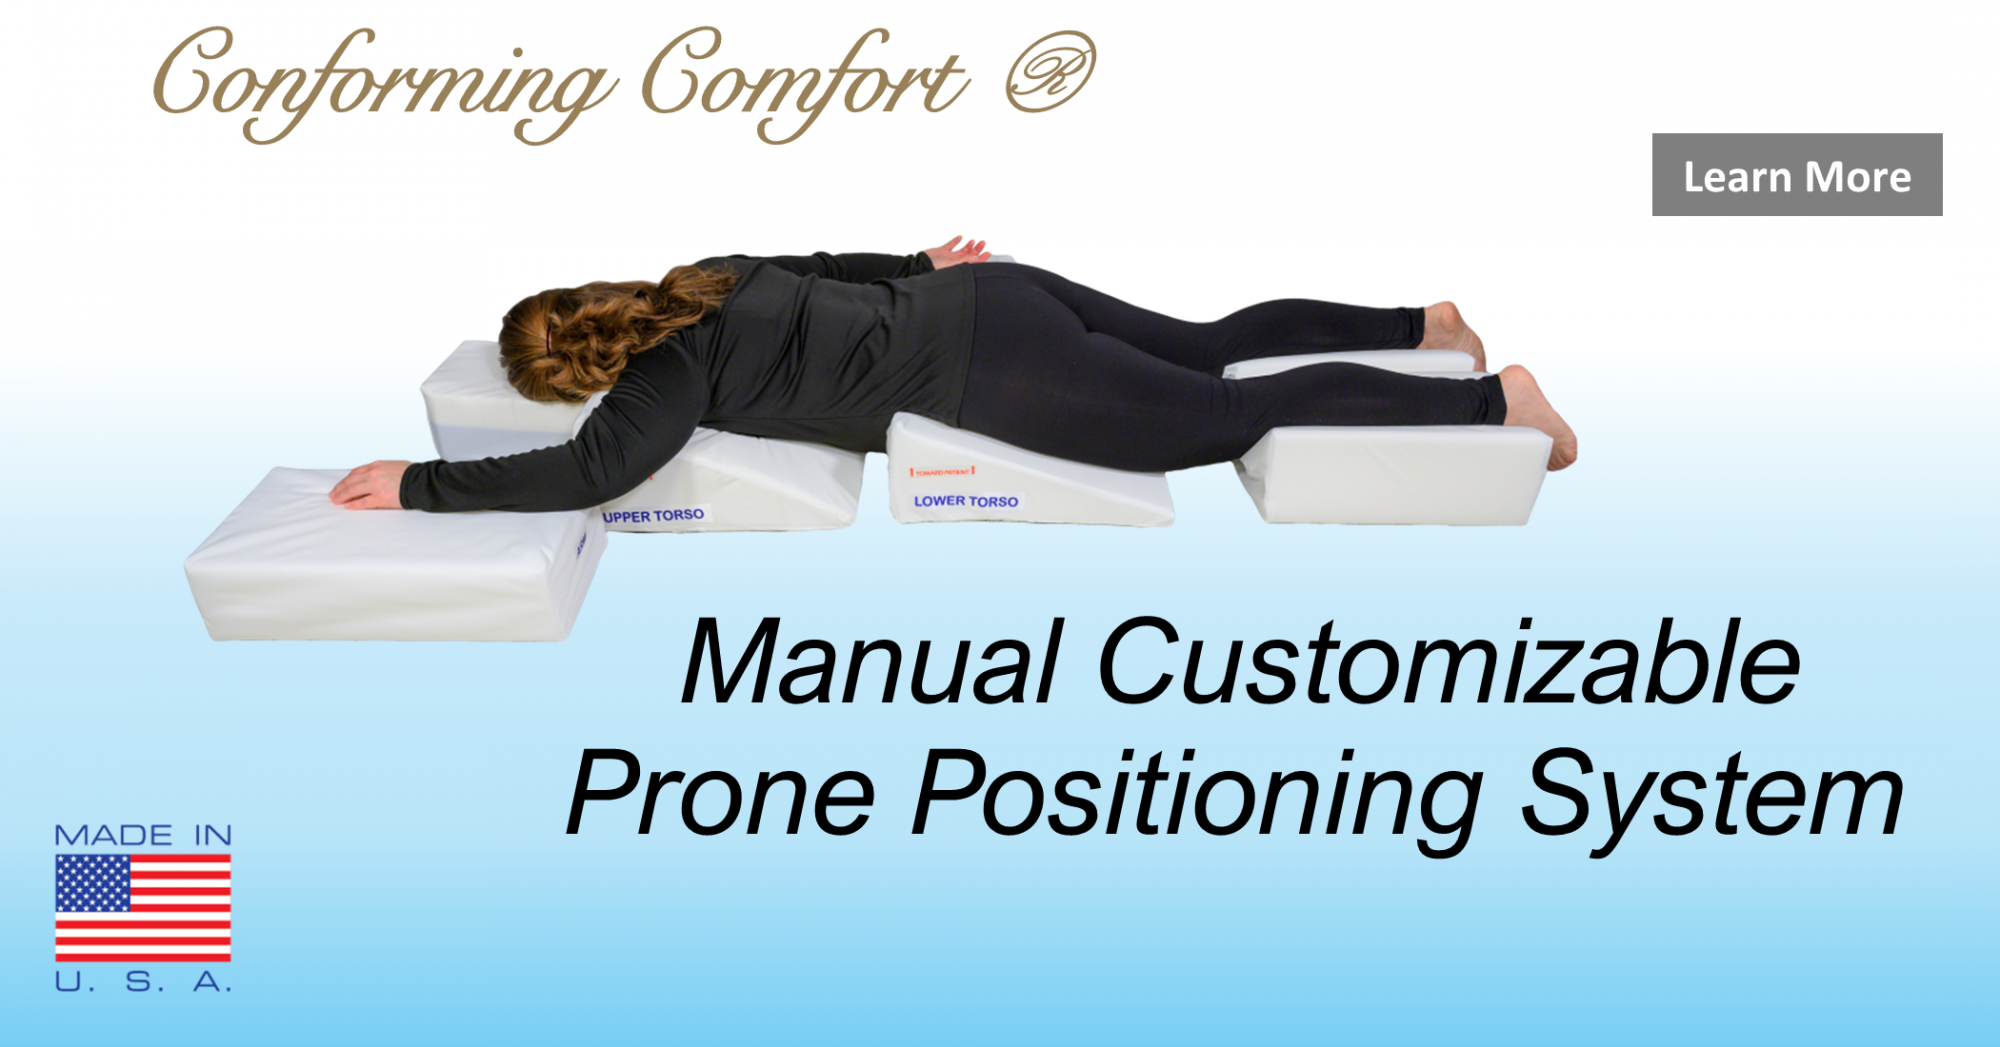 Manual Customizable Prone Positioning System